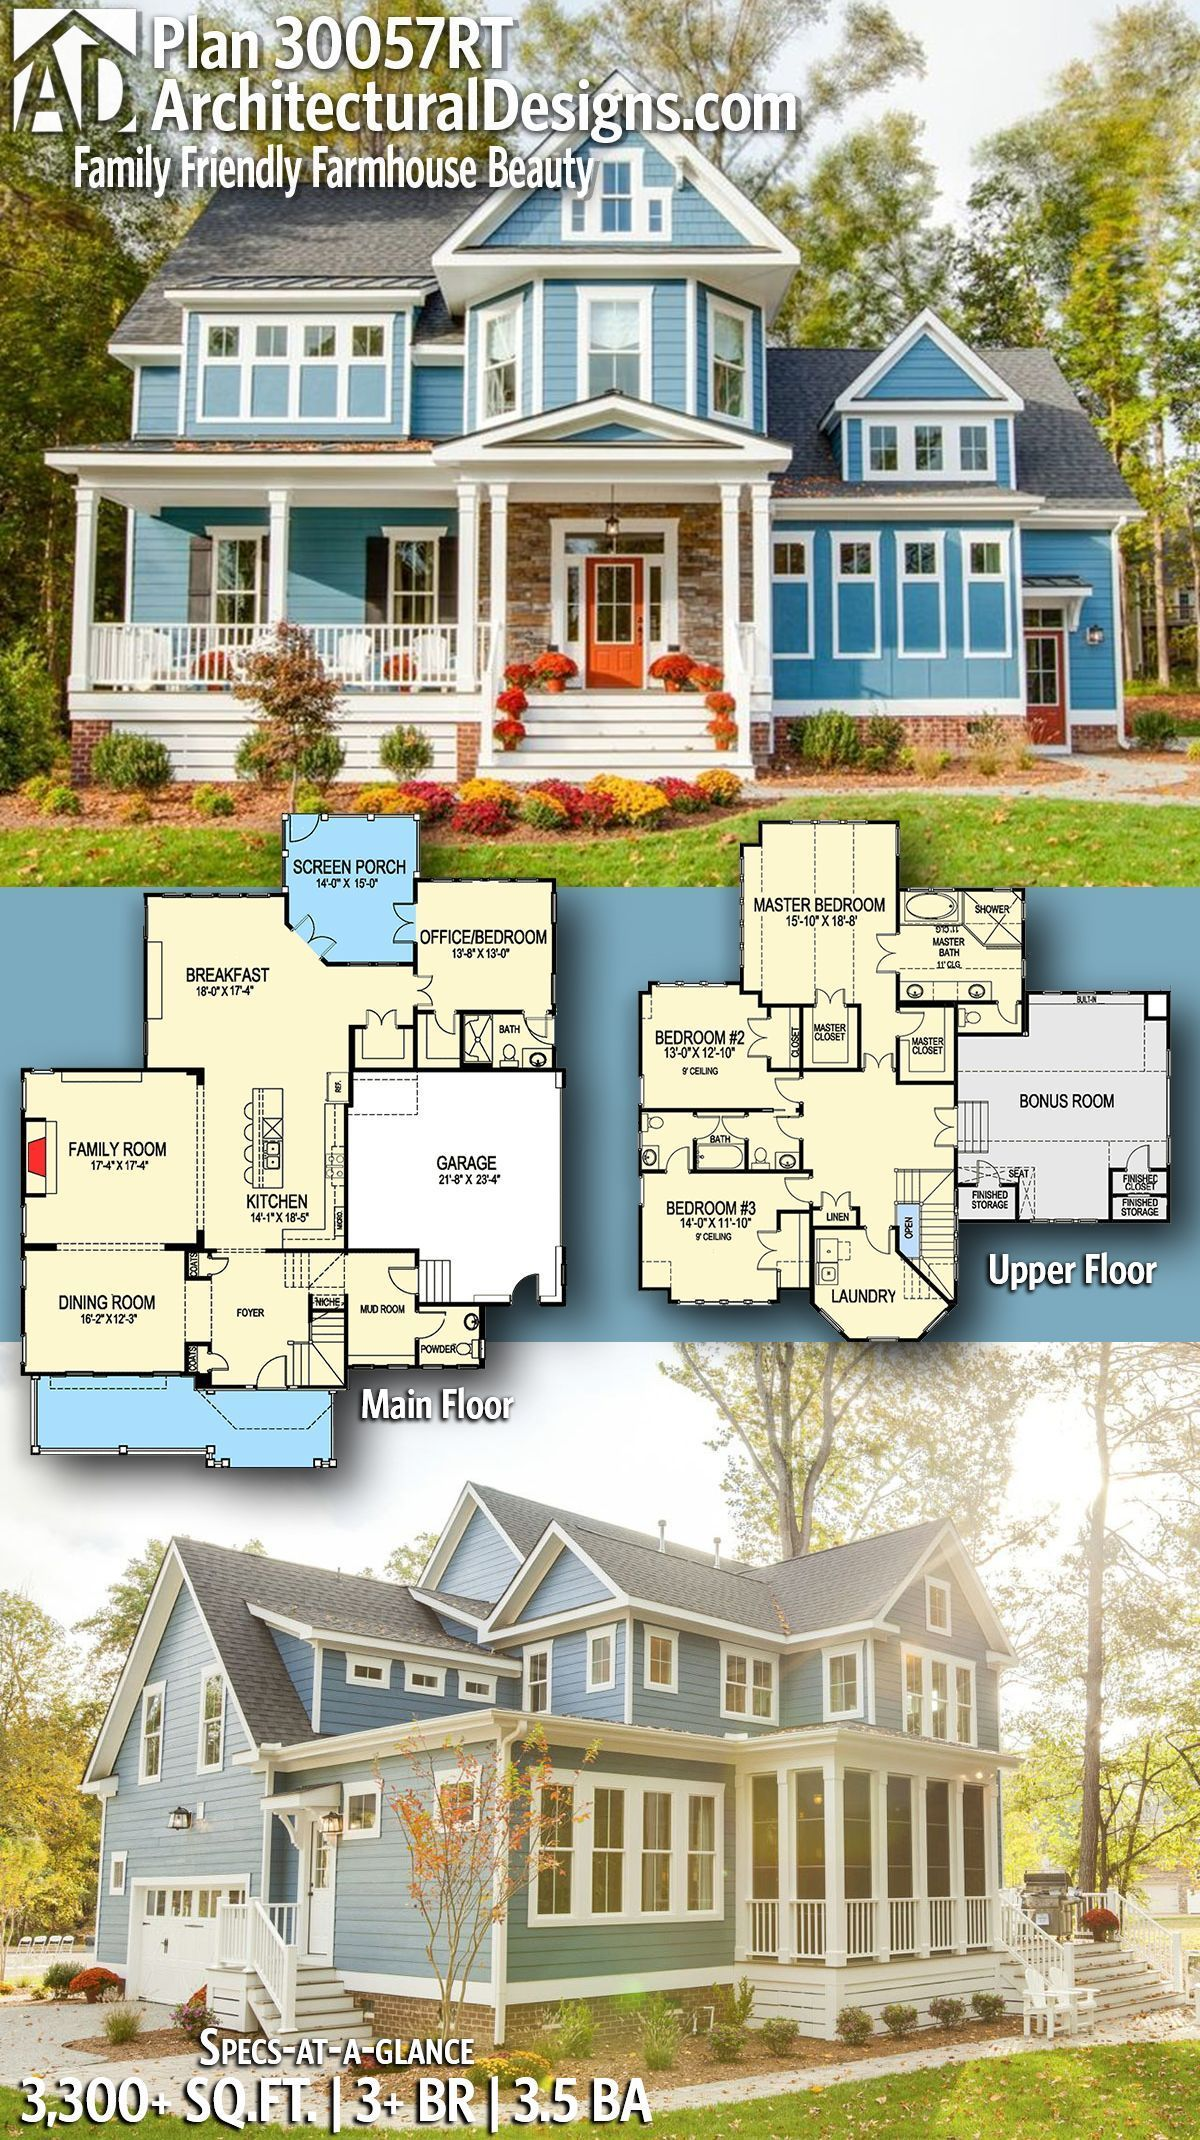 Drawing On Creativity Drawing On Demand Sims 4 House Plans House Plans Farmhouse House Blueprints